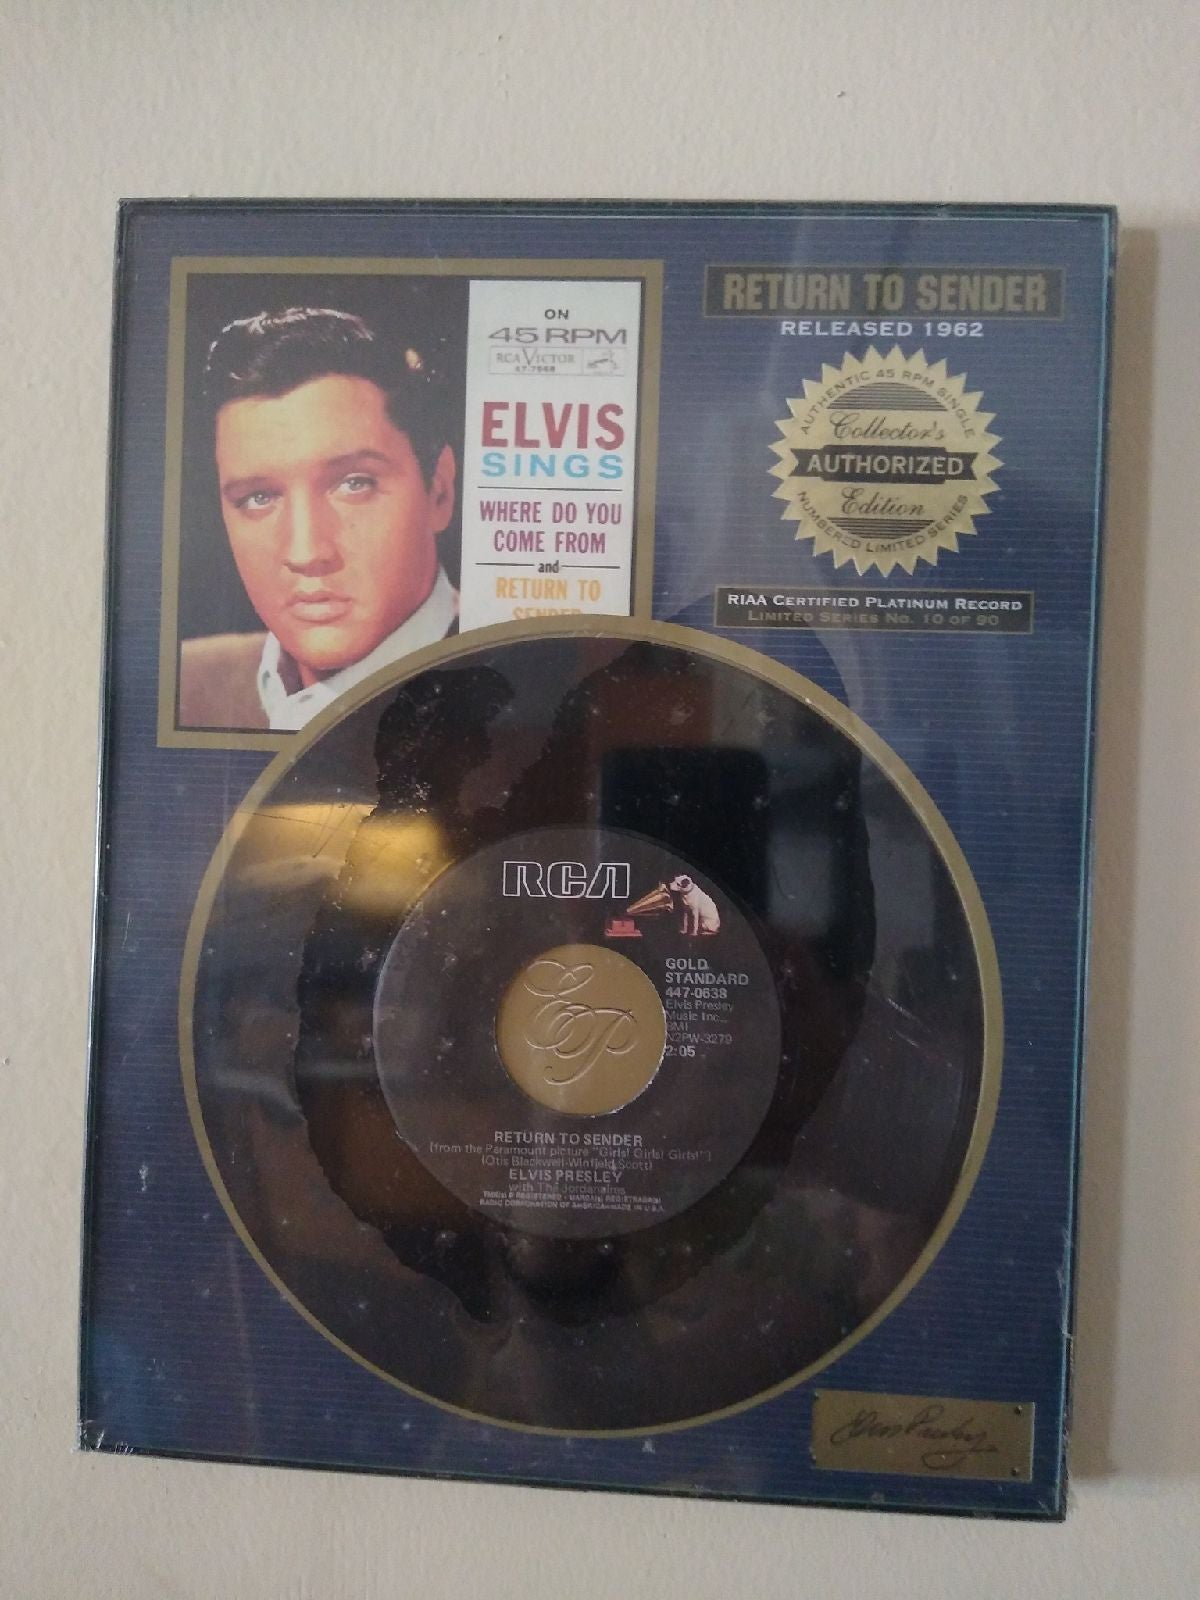 Elvis Presley, Return to Sender. RIAA Ce